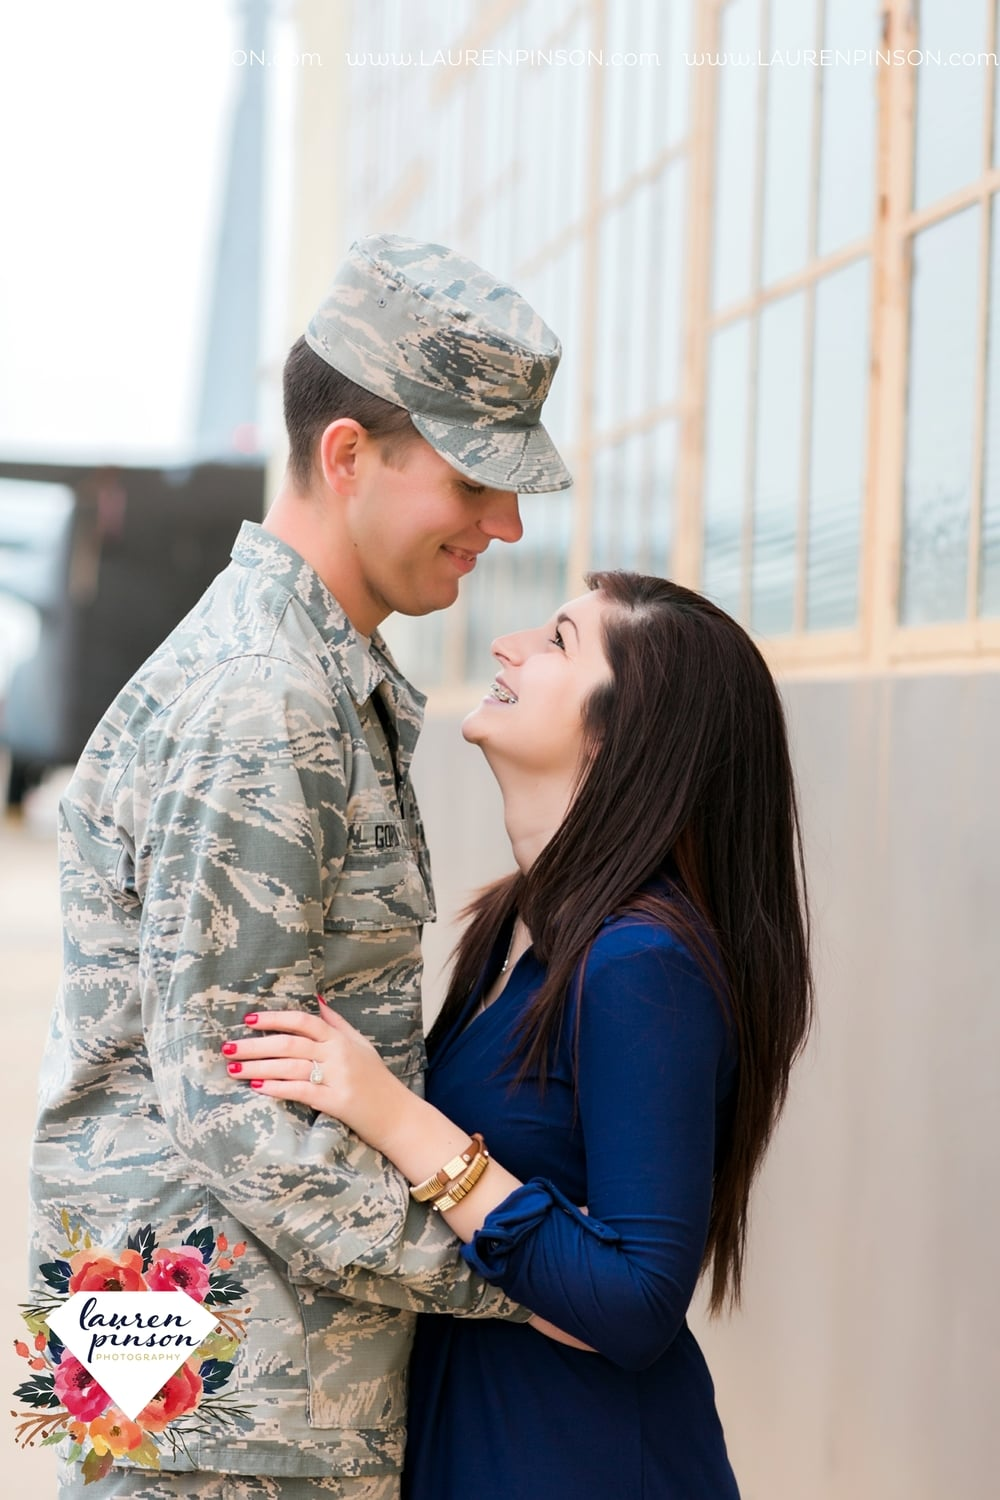 sheppard-afb-wichita-falls-engagement-session-airmen-in-uniform-abu-airplanes-bride-engagement-ring-texas-air-force-base_1998.jpg